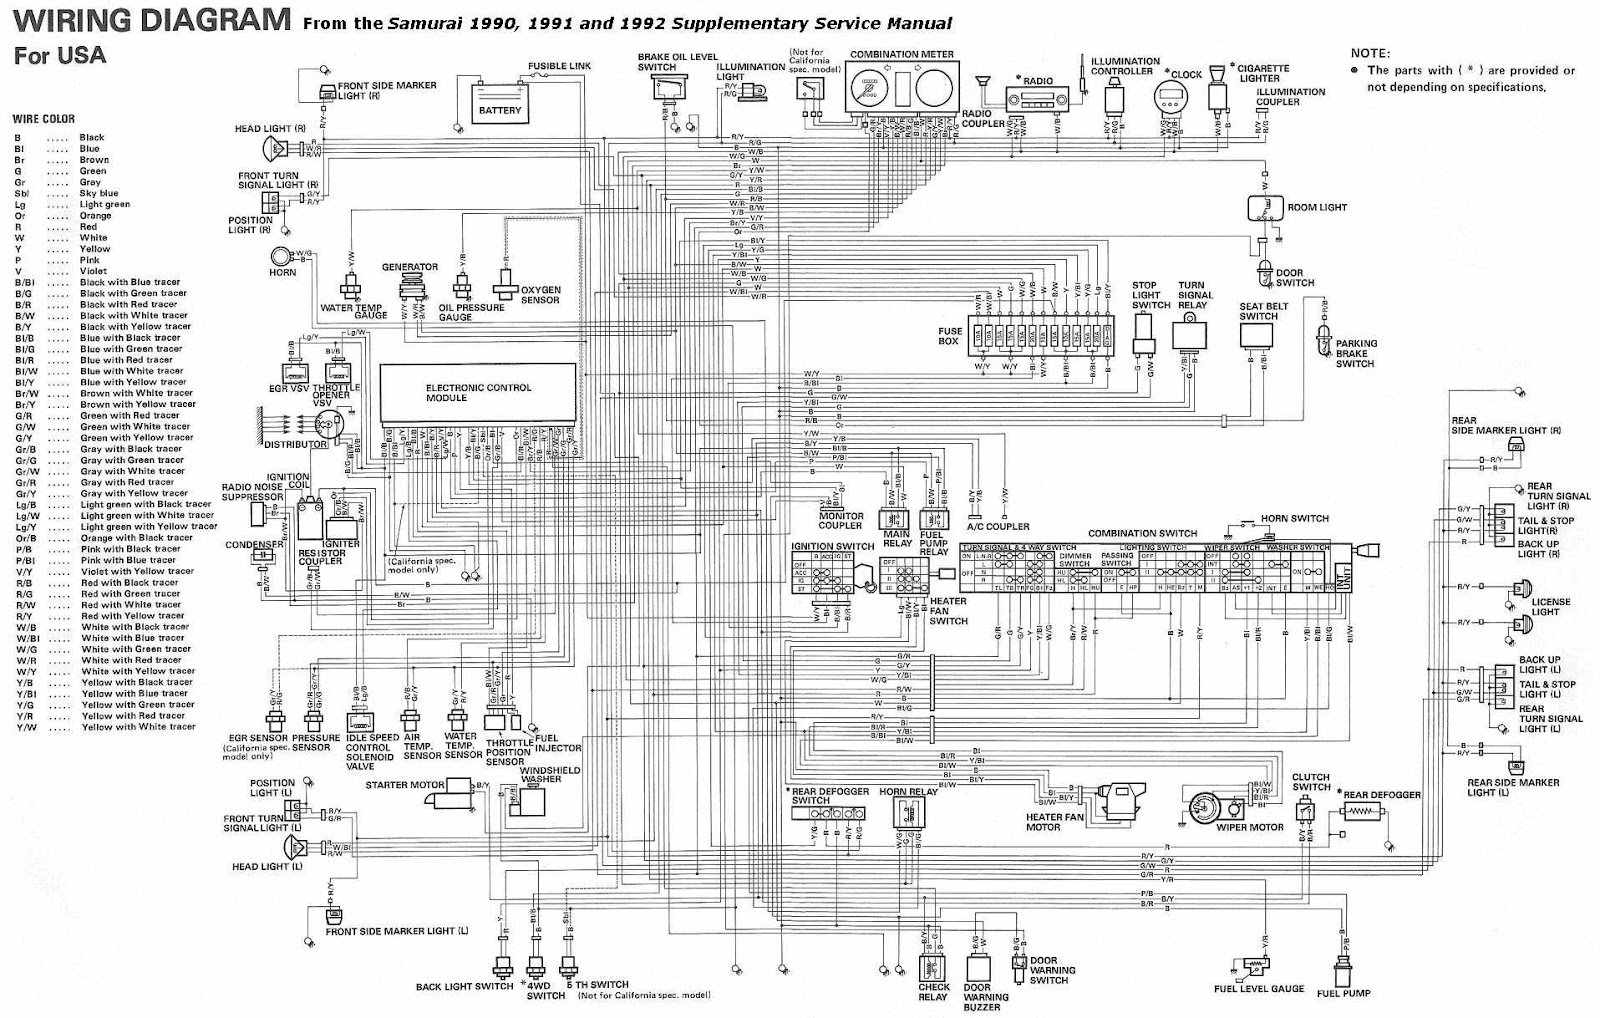 suzuki samurai wiringdiagram zOFqJea cbr 900 wiring diagram wiring diagram shrutiradio 95 cbr900rr wiring diagram at reclaimingppi.co